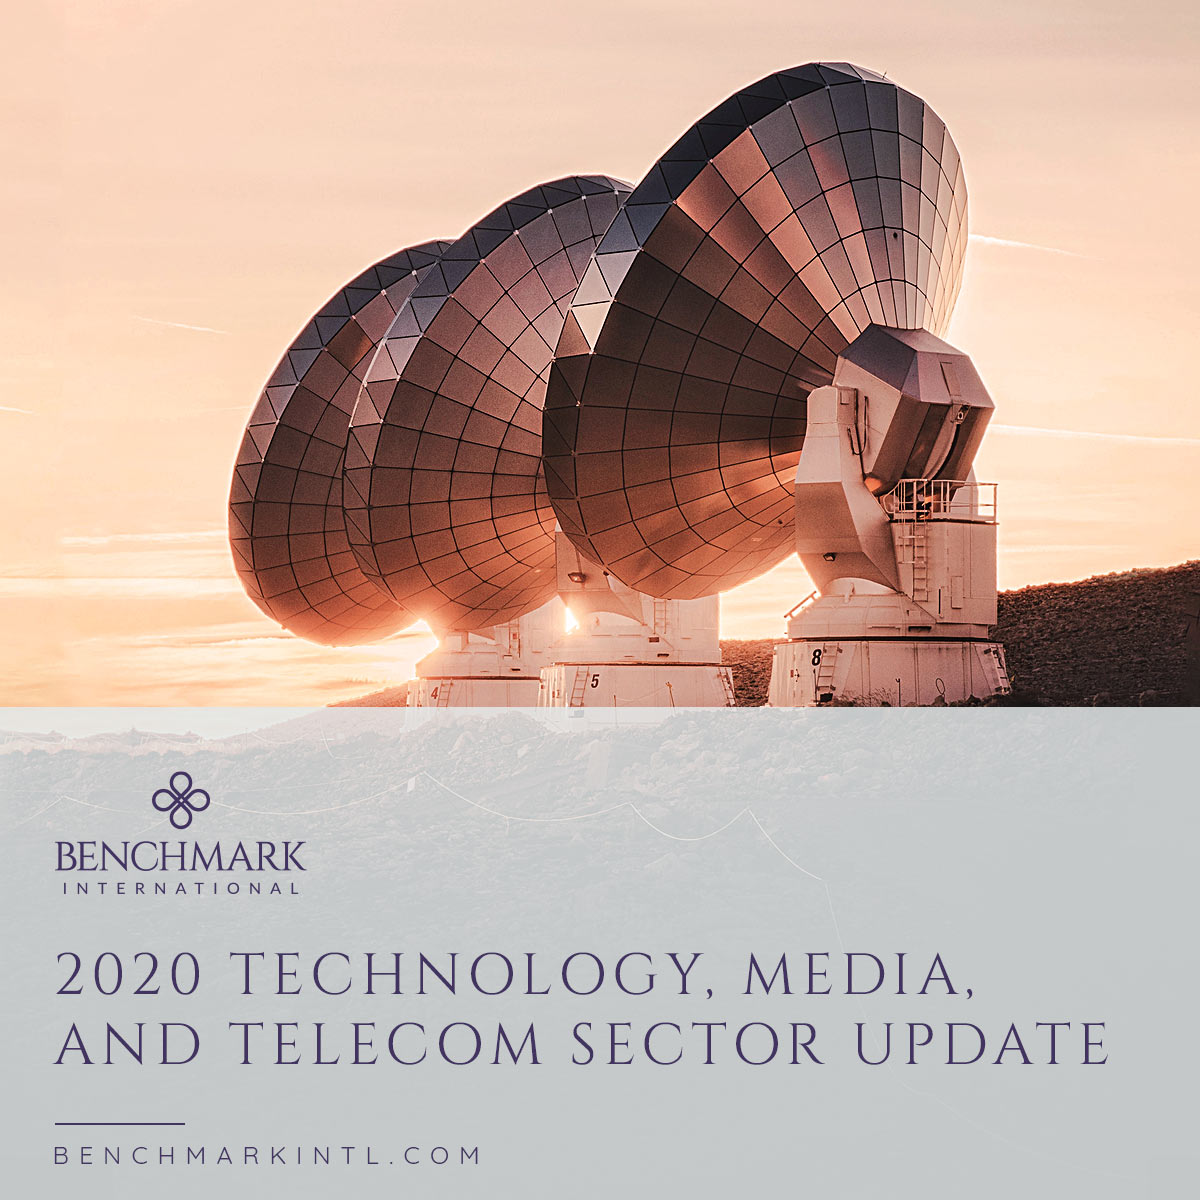 2020_Technology_Media_And_Telecom_Sector_Update_Social